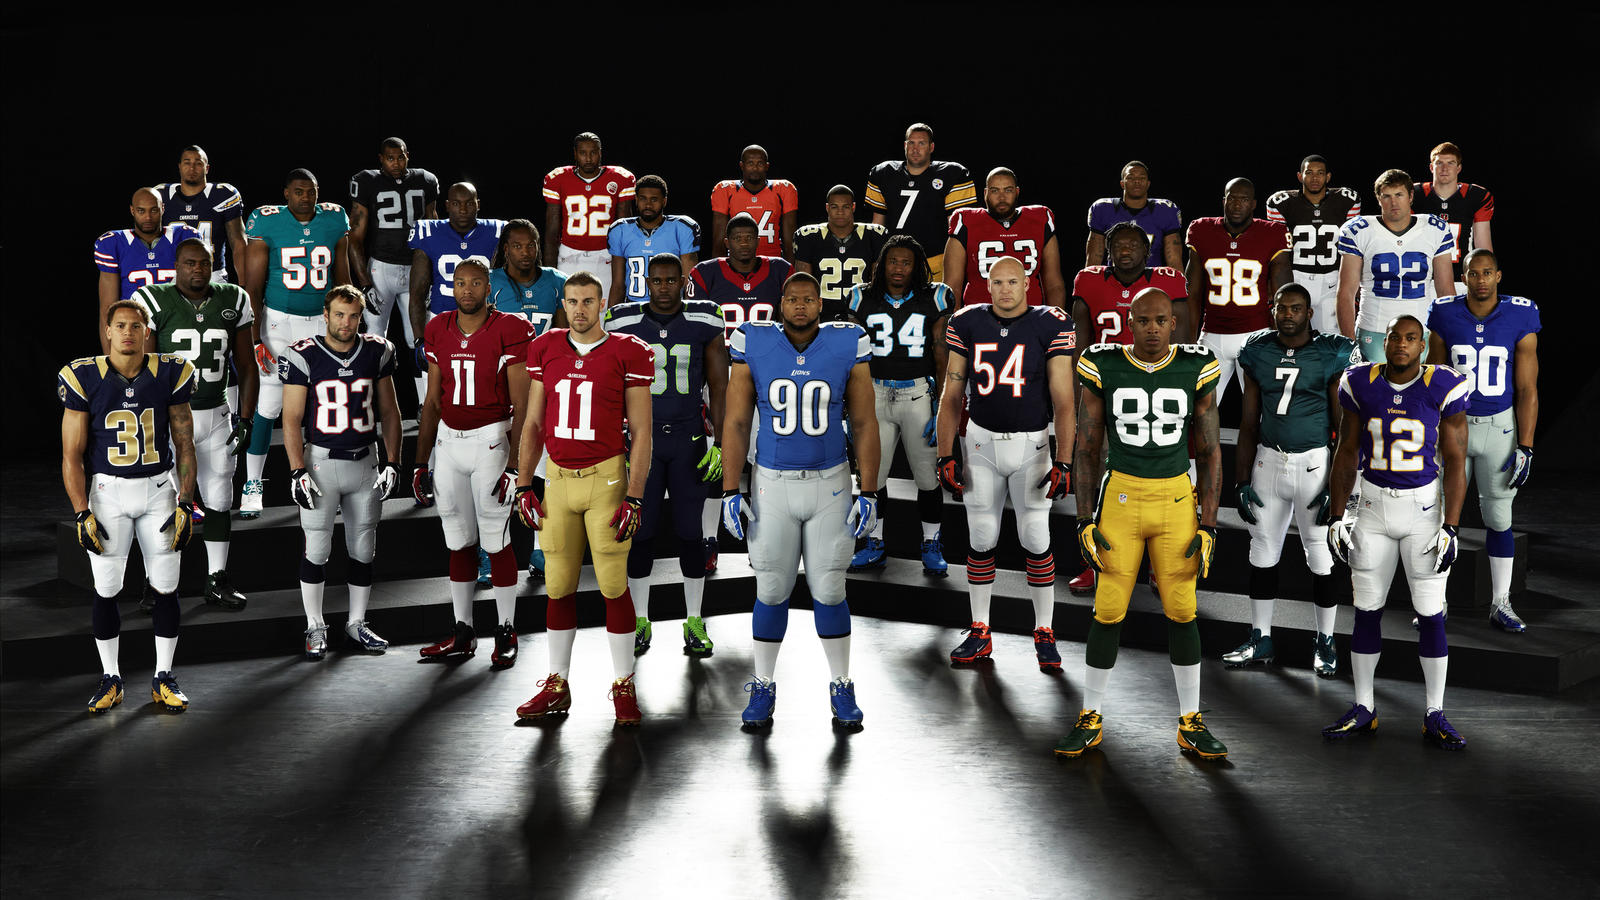 c54782dcf6a Nike_NFL_2012_TeamUniforms_03APR. Nike_NFL_UniformUnveil_CDenson_03APR2012.  Nike_NFL_UniformUnveil_Cleats_03APR2012